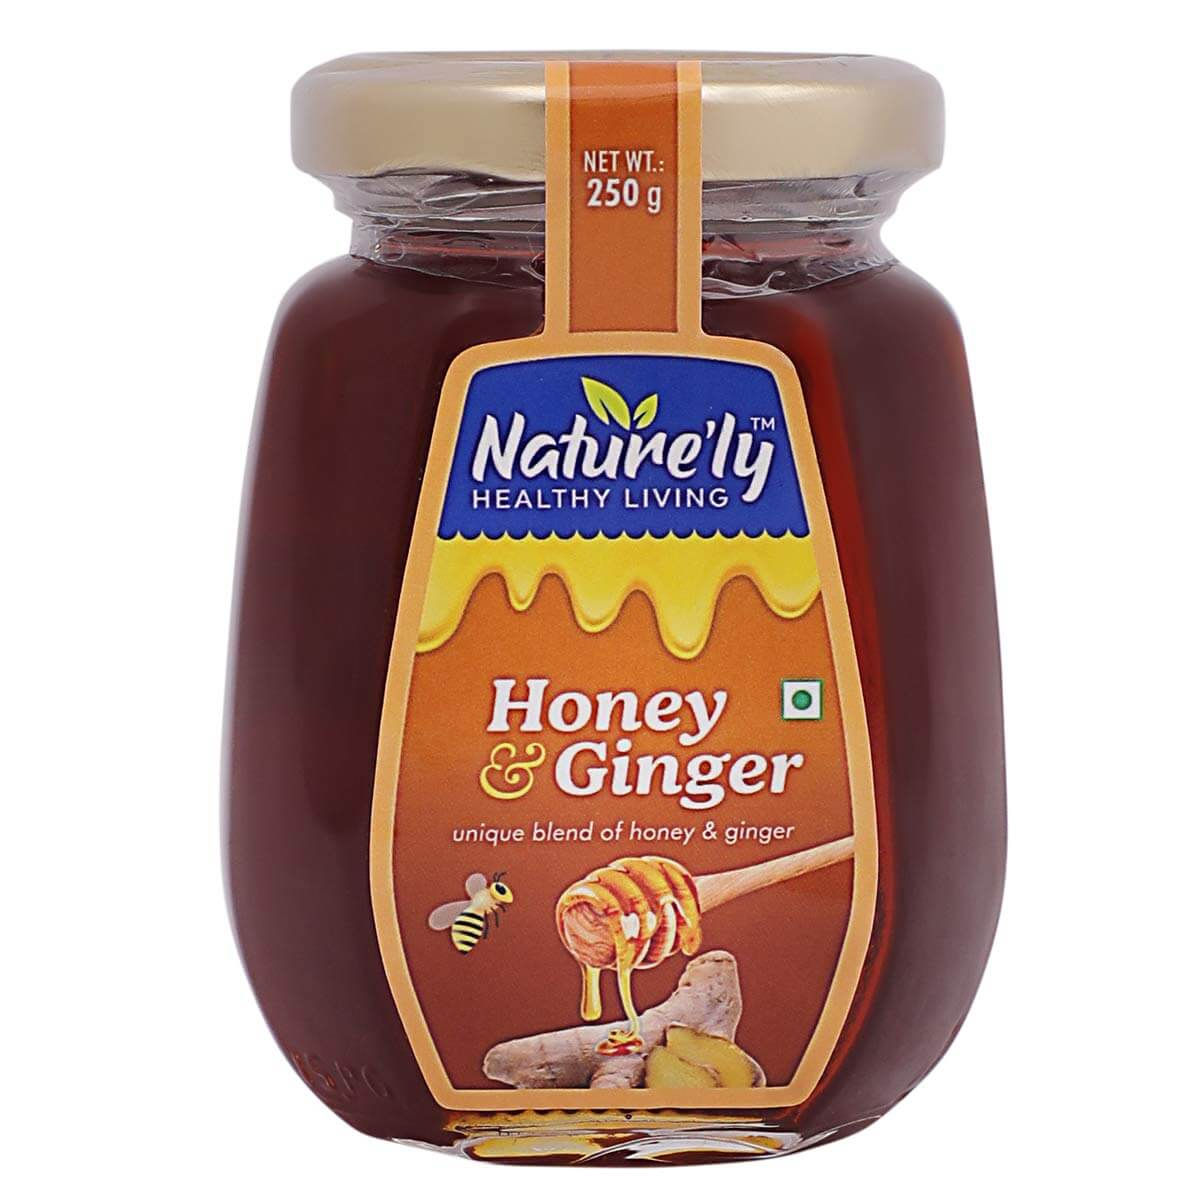 NATURE'LY RAW HONEY INFUSED WITH GINGER| PURE NATURAL HONEY| HEALTH BENEFITS| IMMUNITY SUPPORT|GLUTEN FREE| PREMIUM GLASS BOTTLE - 250GRAMS